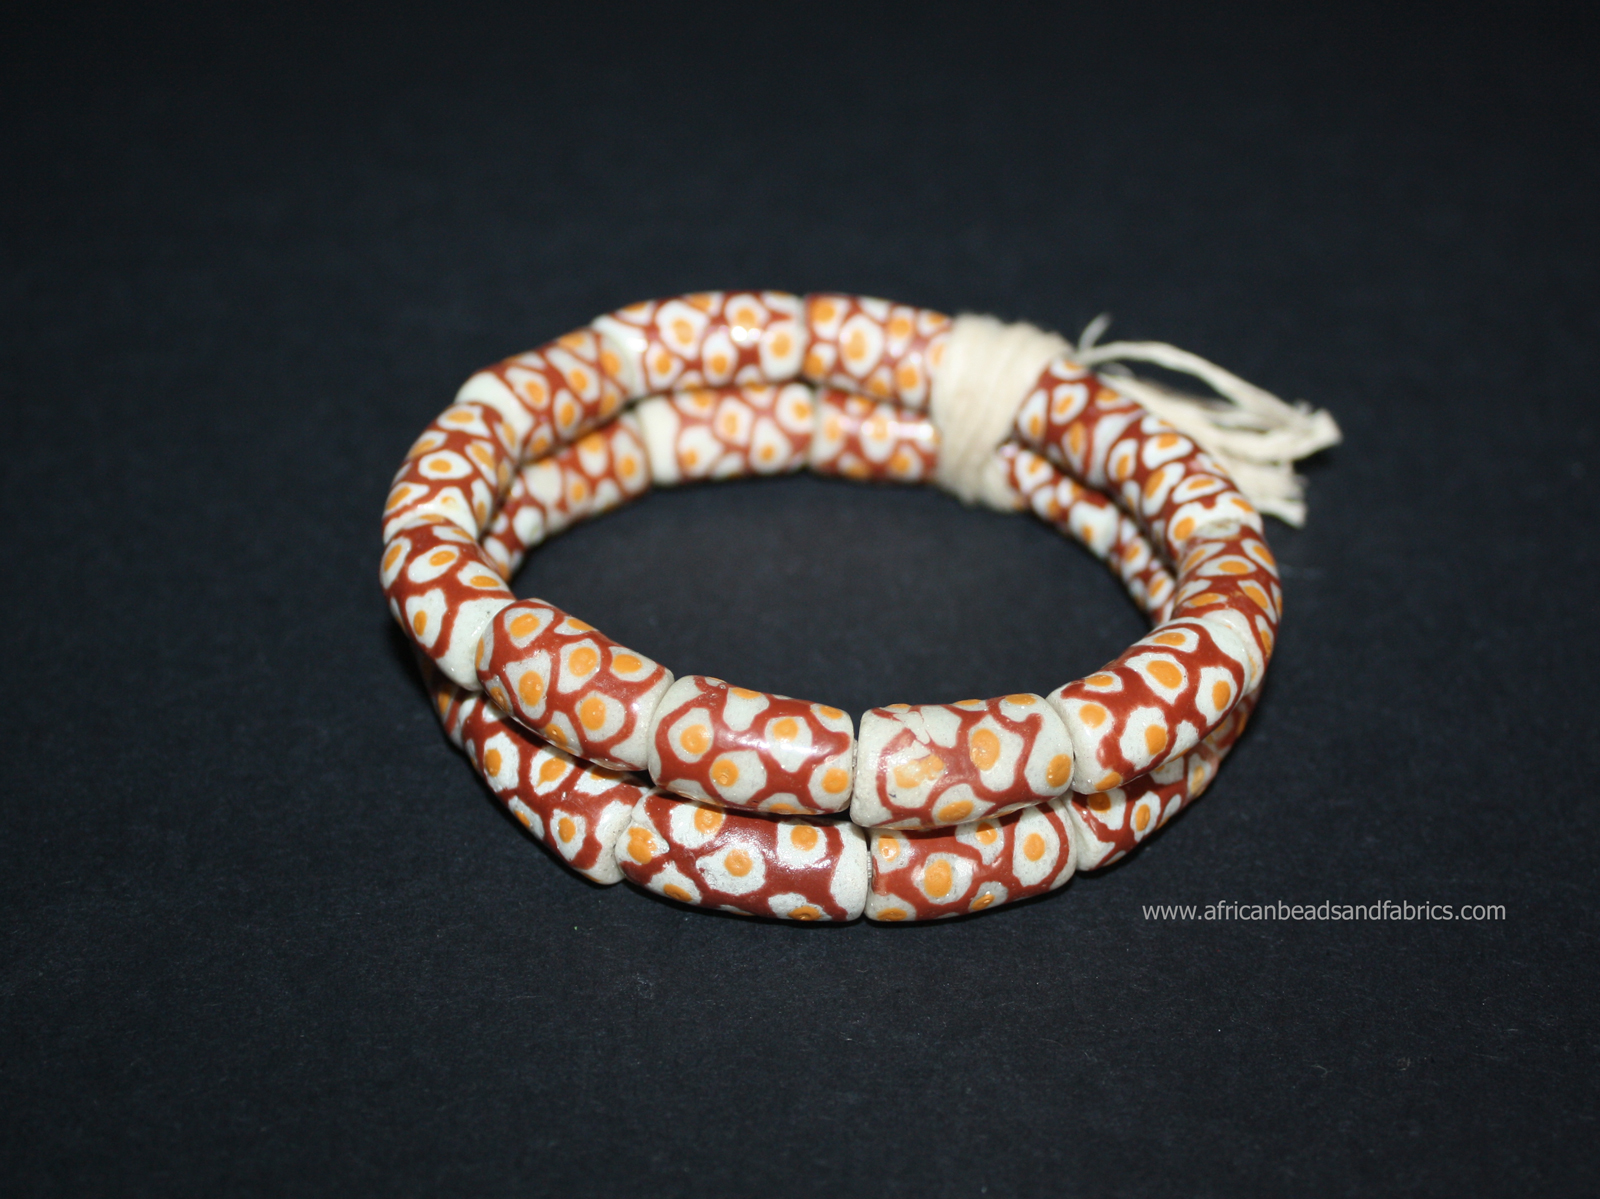 African-beads-Ghana-Krobo-recycled-glass-tubes-20mm-off-white-red-watermarked